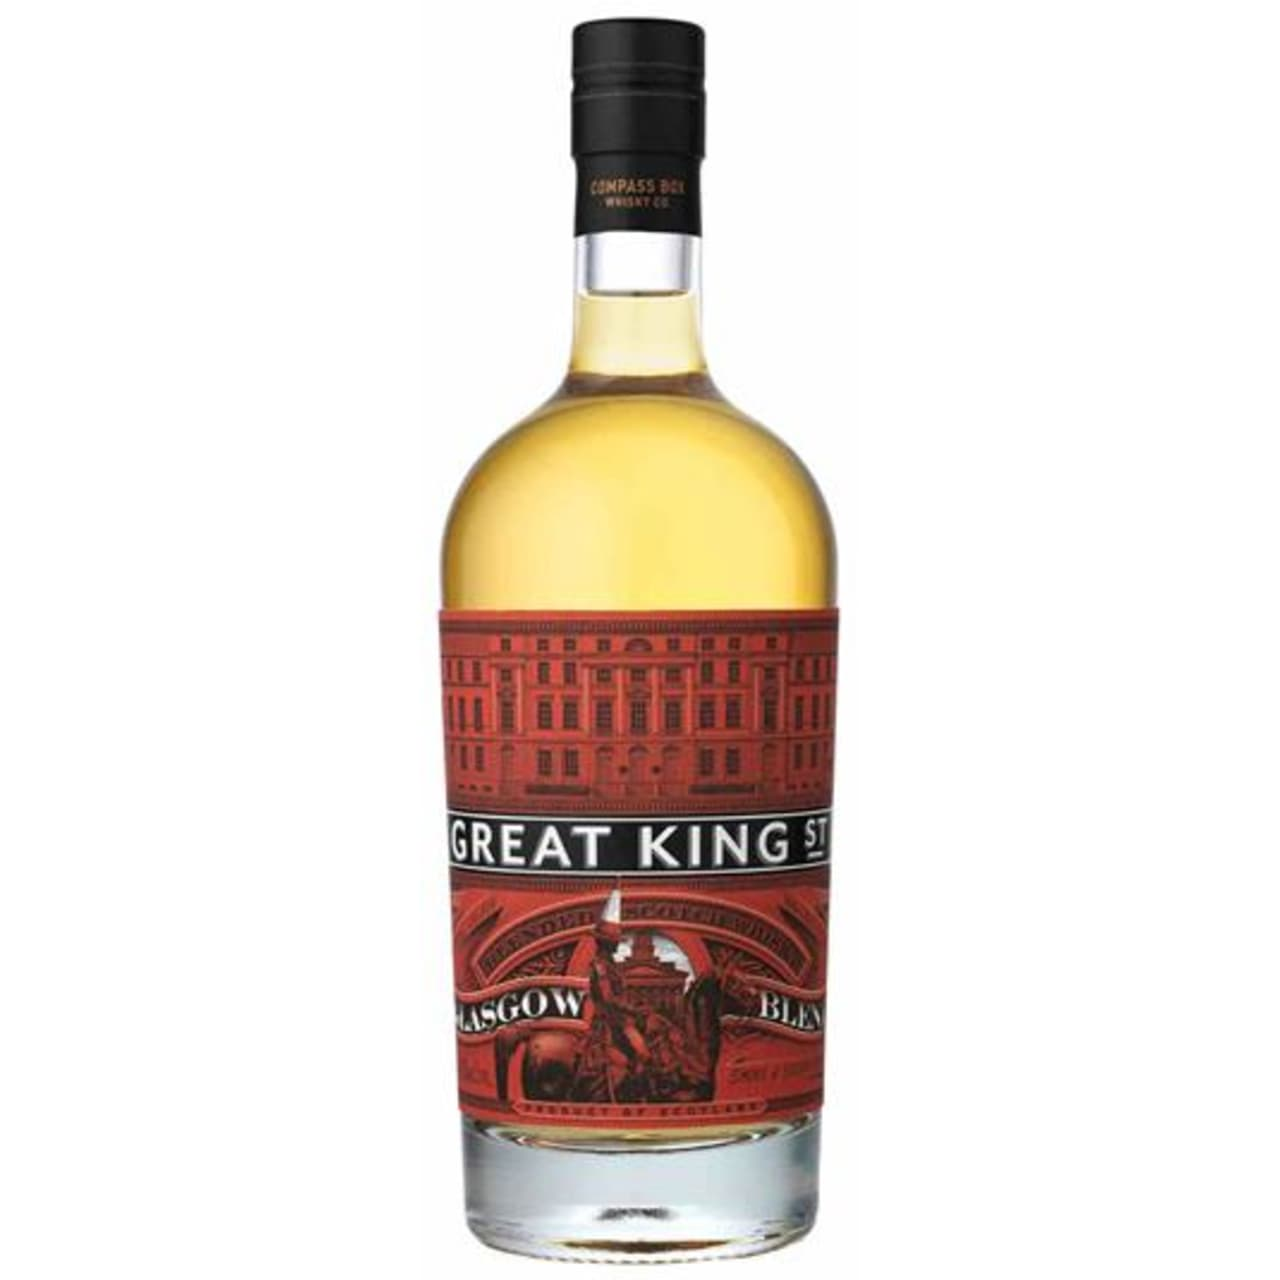 Product Image - Compass Box Great King St. Glasgow Blend